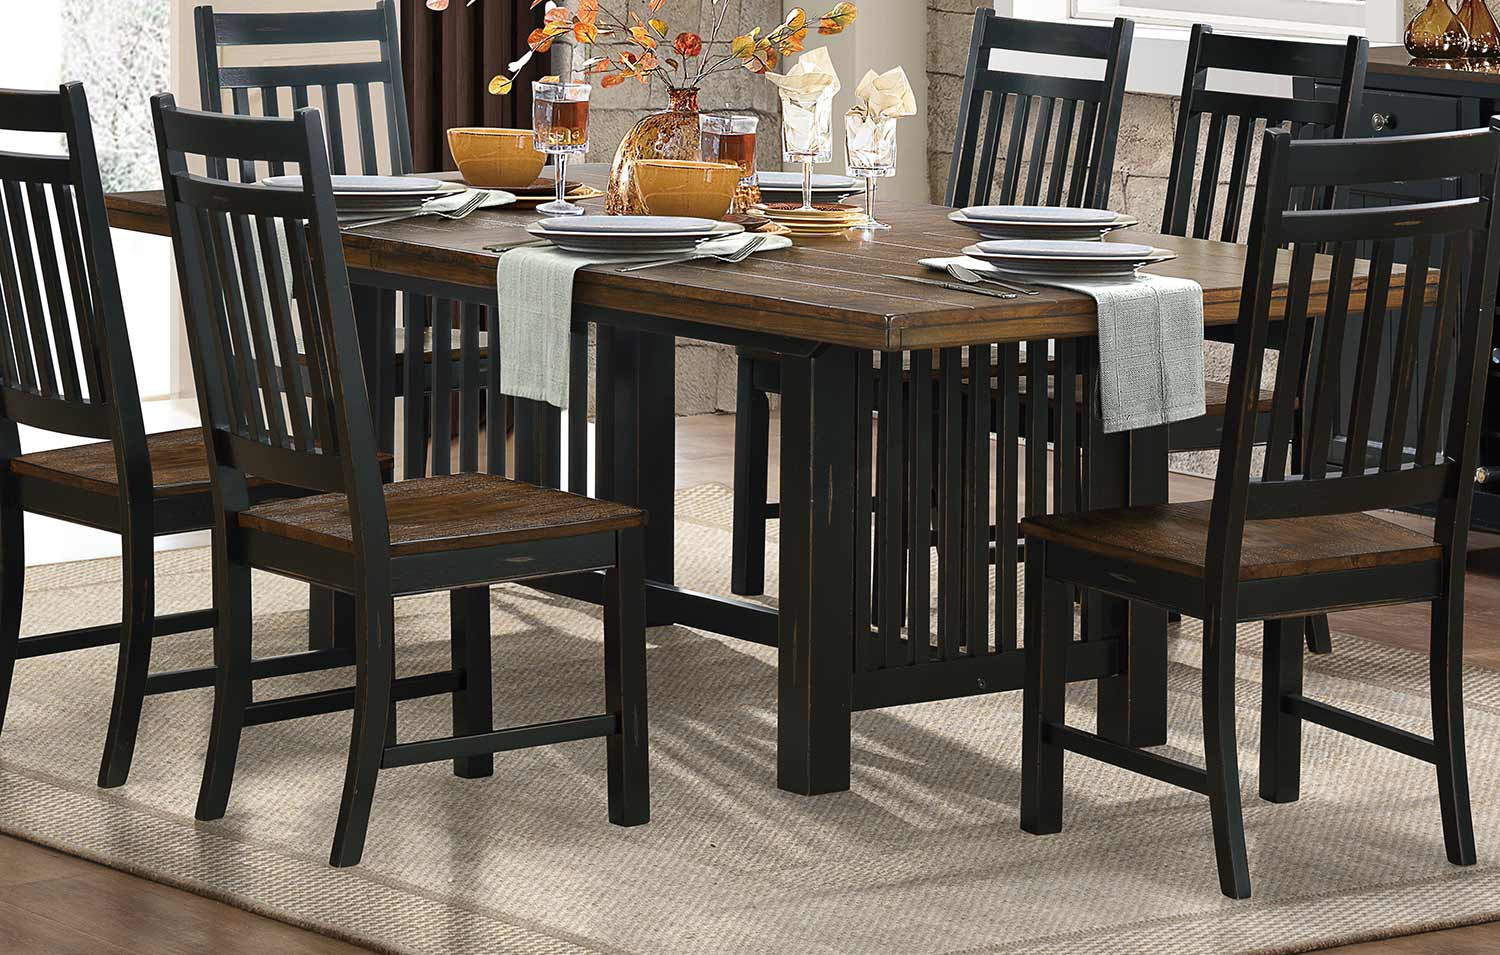 Homelegance Three Falls Dining Table - Black